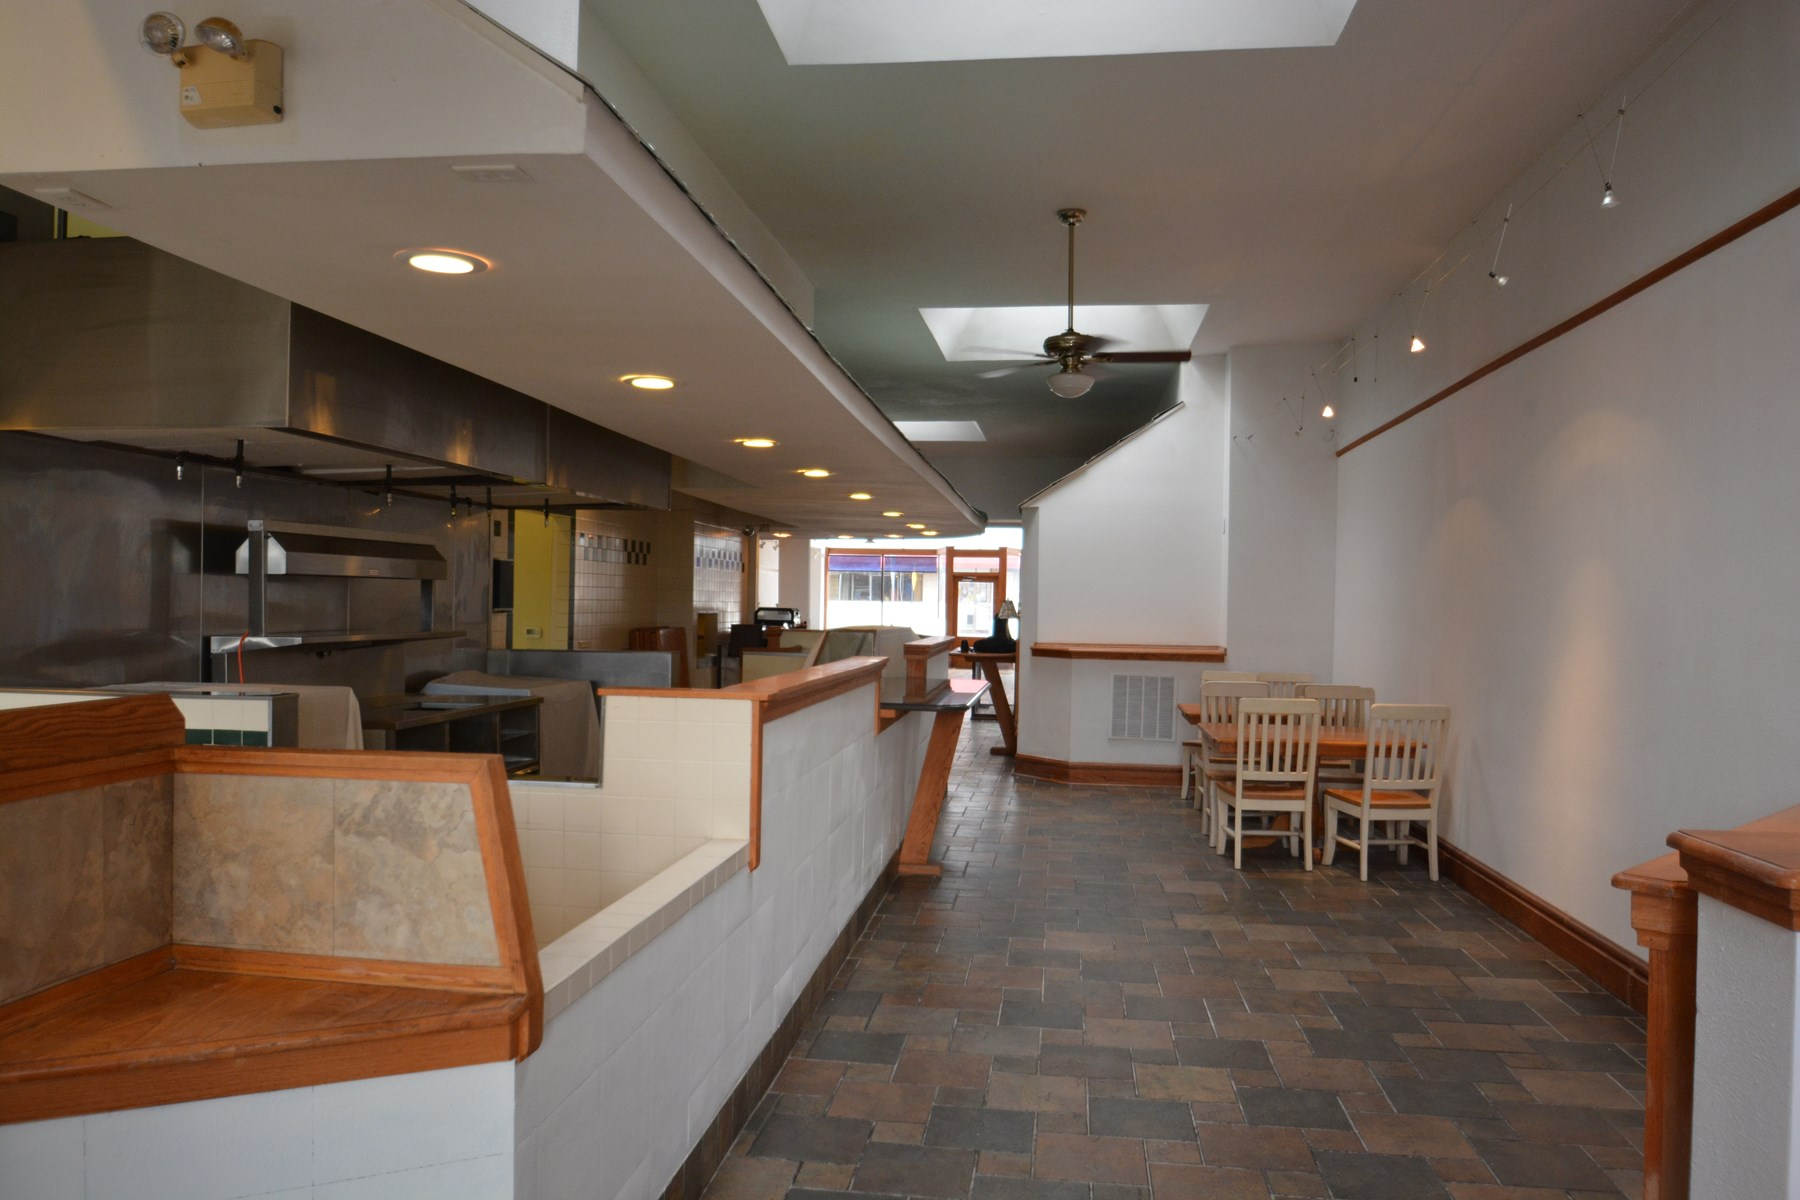 6,000 Sq. Ft. Restaurant/Commercial Space Available